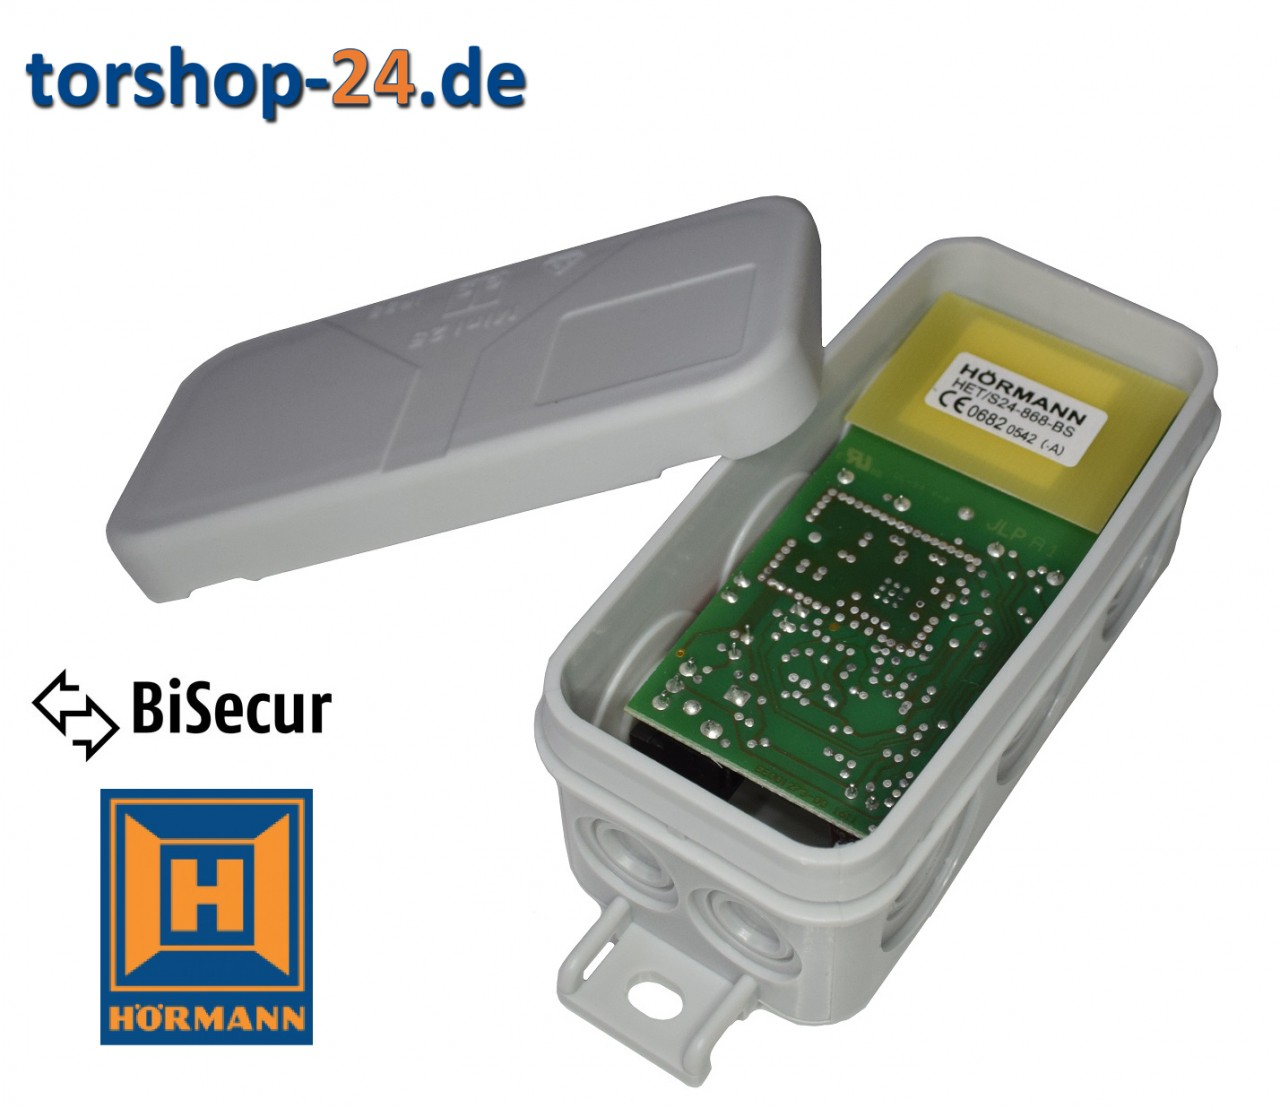 Hormann Wireless Receiver HET/S 24 868 MHz BiSecur